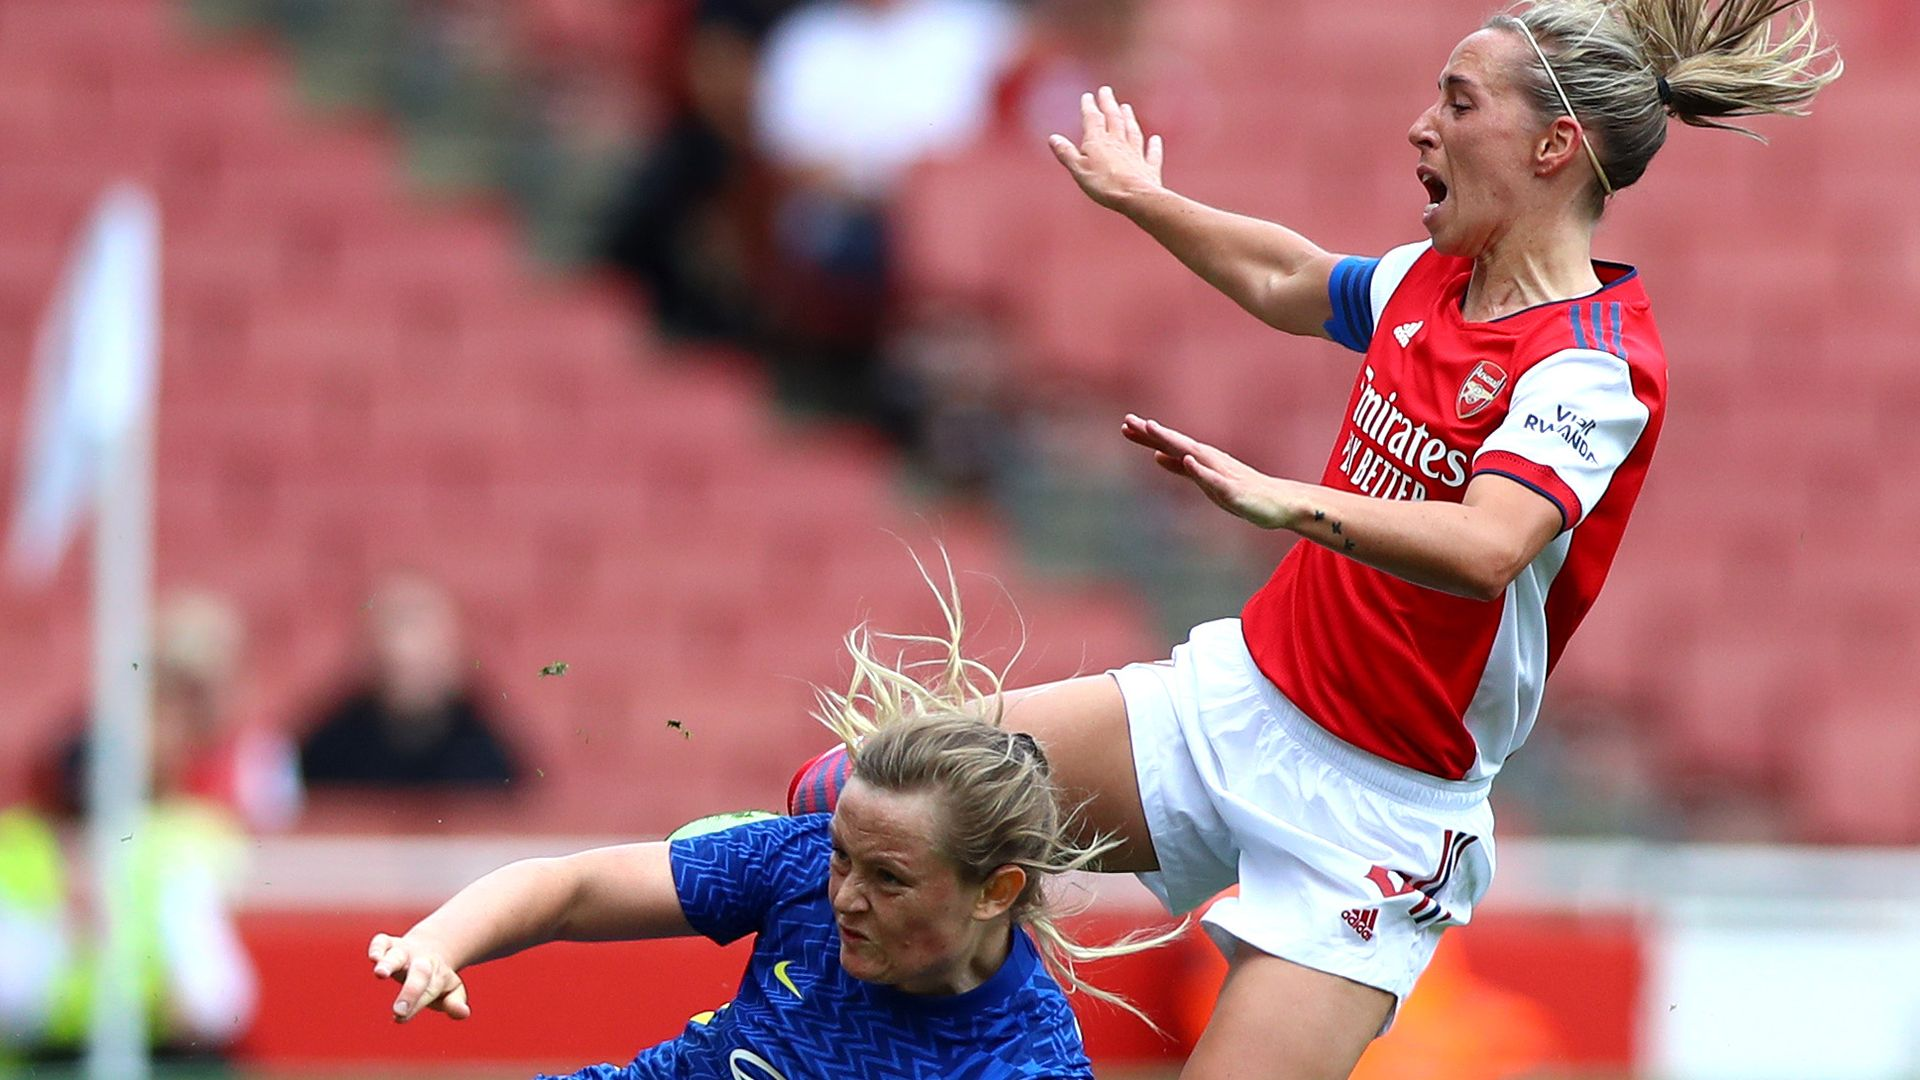 Arsenal confirm Nobbs ankle ligament injury